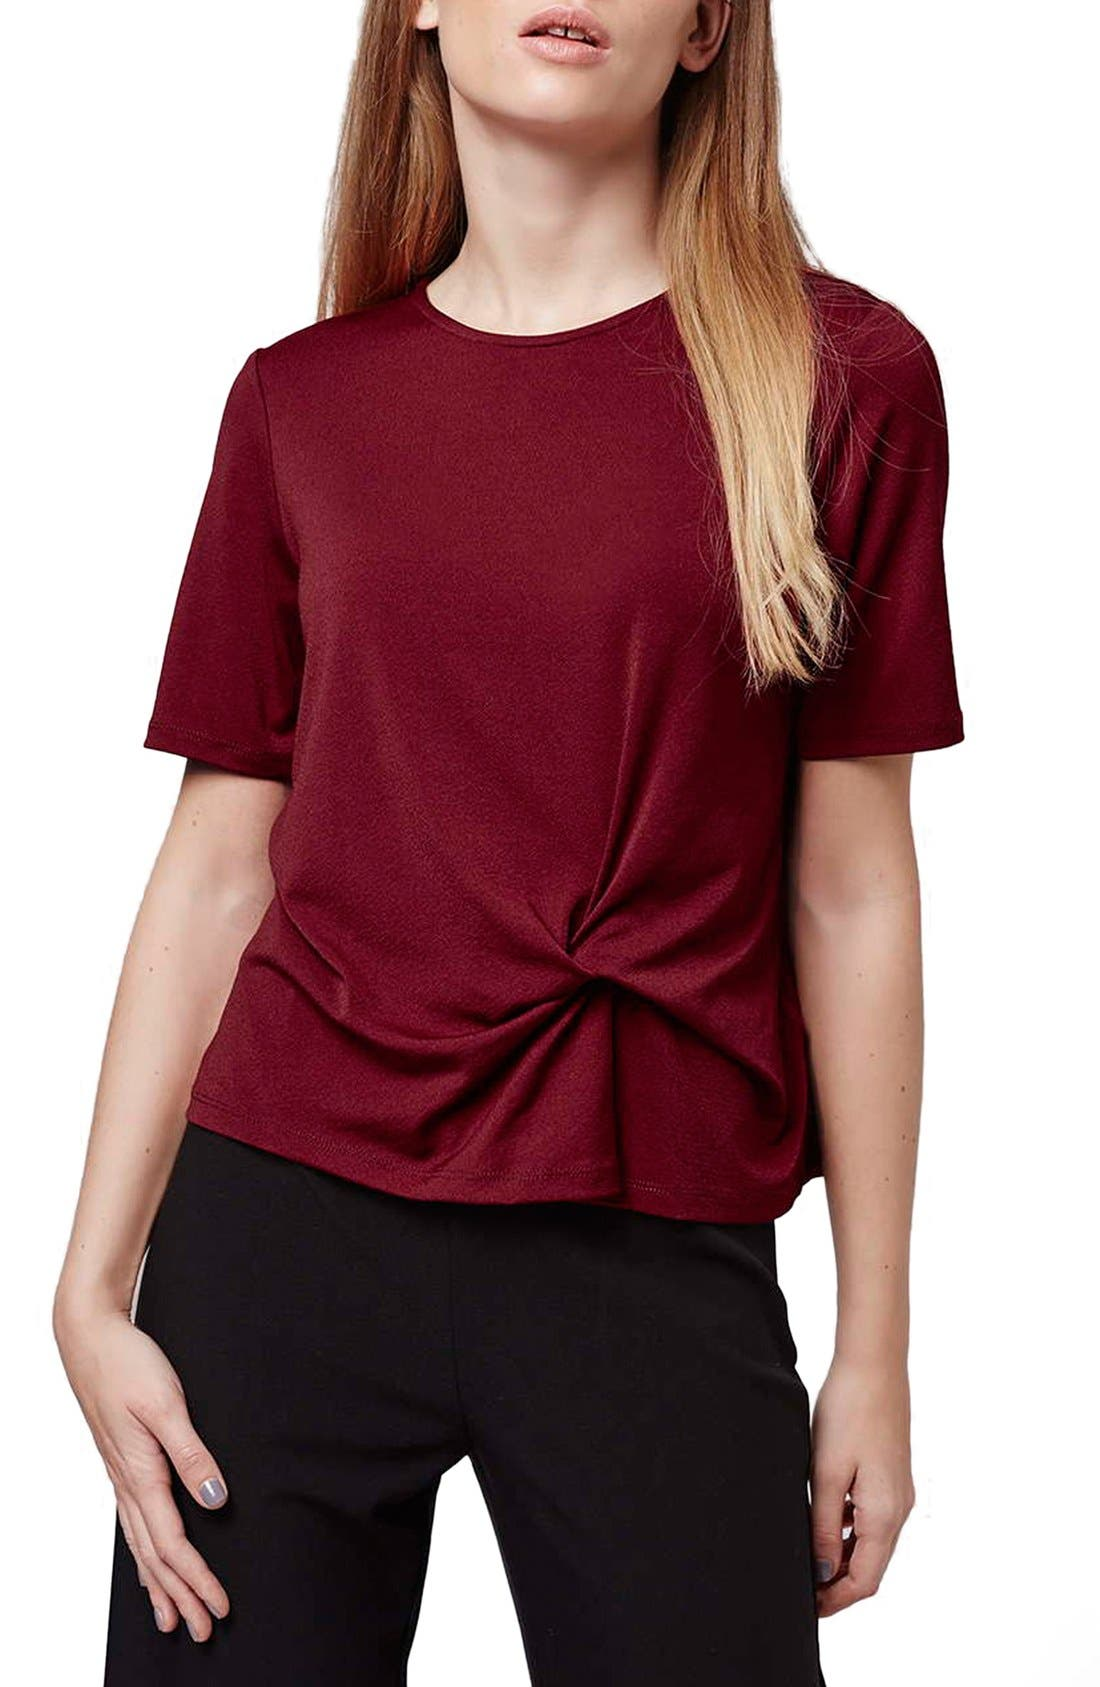 Alternate Image 1 Selected - Topshop Twist Front Tee (Petite)